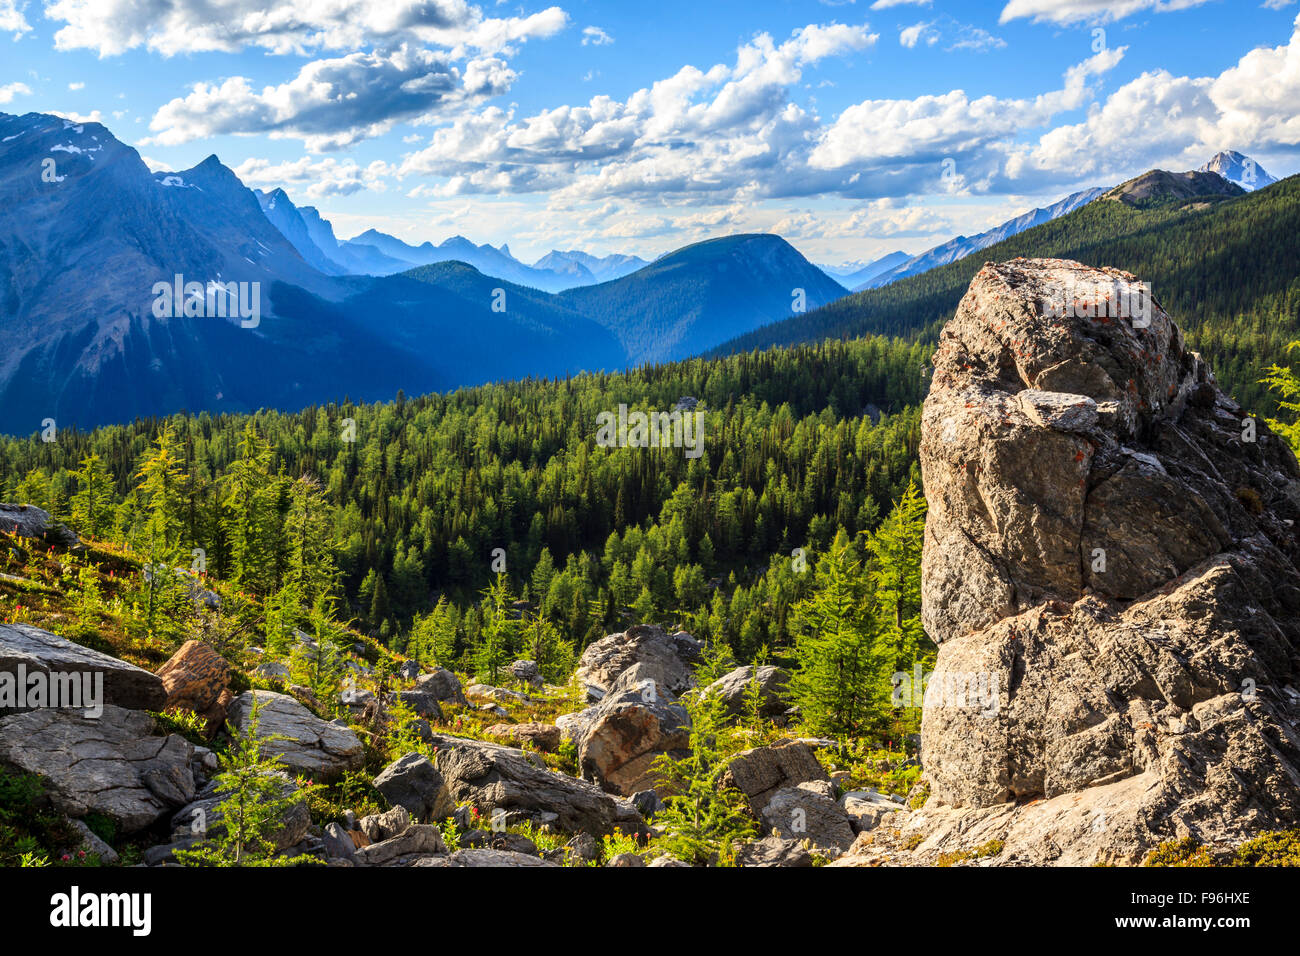 The view from Goodsir Pass over the larch forest near the boundary of Kootenay and Yoho National Parks. Kootenay - Stock Image